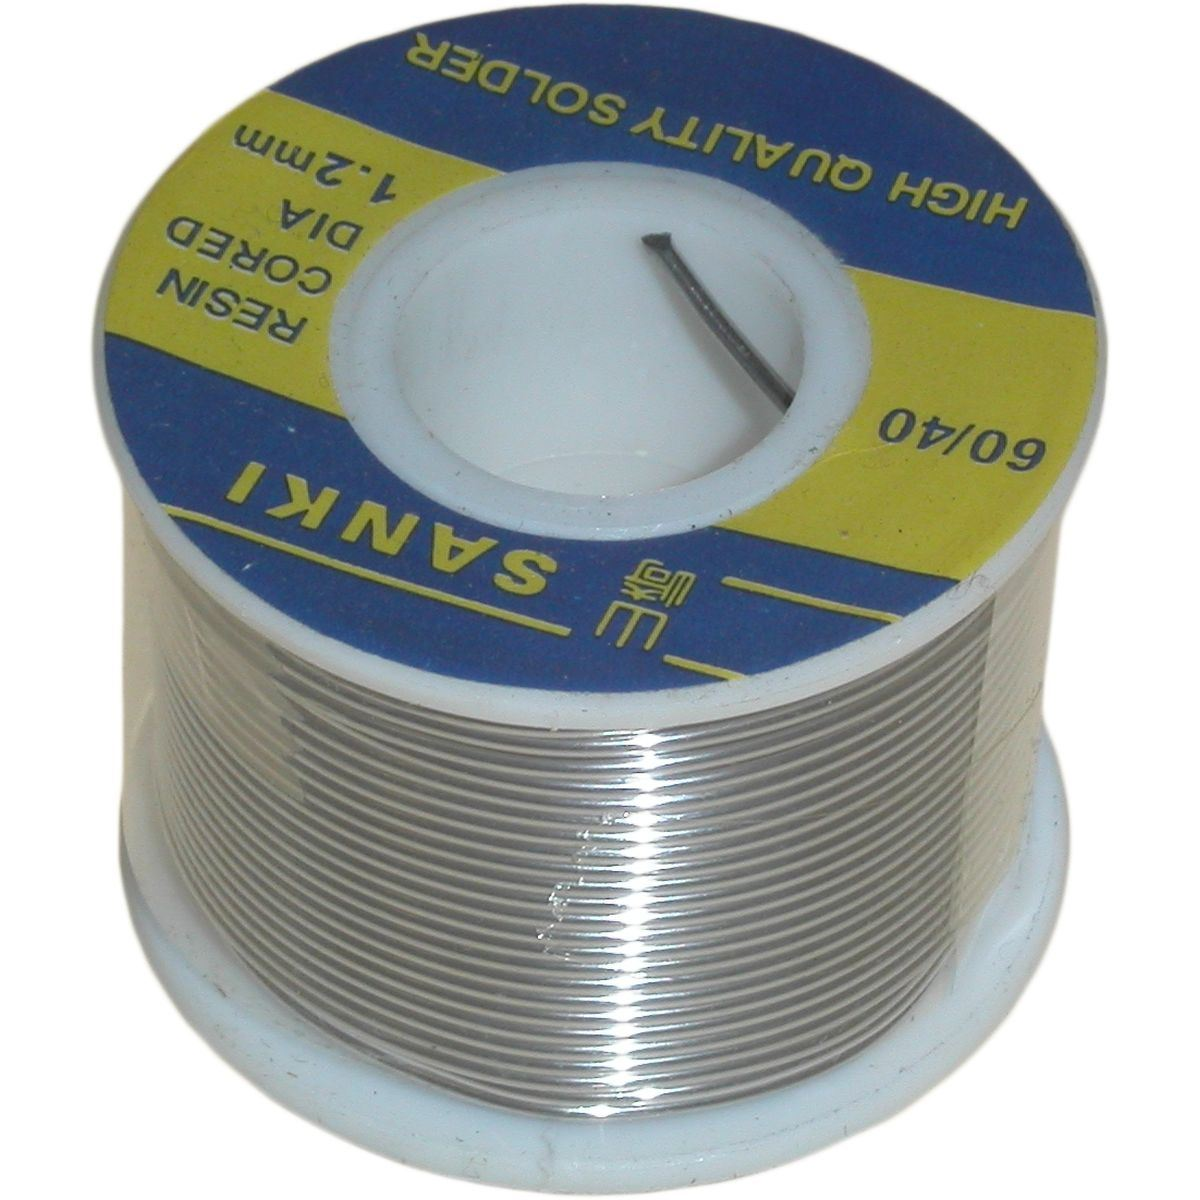 AW Motorcycle Parts. Solid Solder Wire 60/40 60% tin 40% lead alloy ...